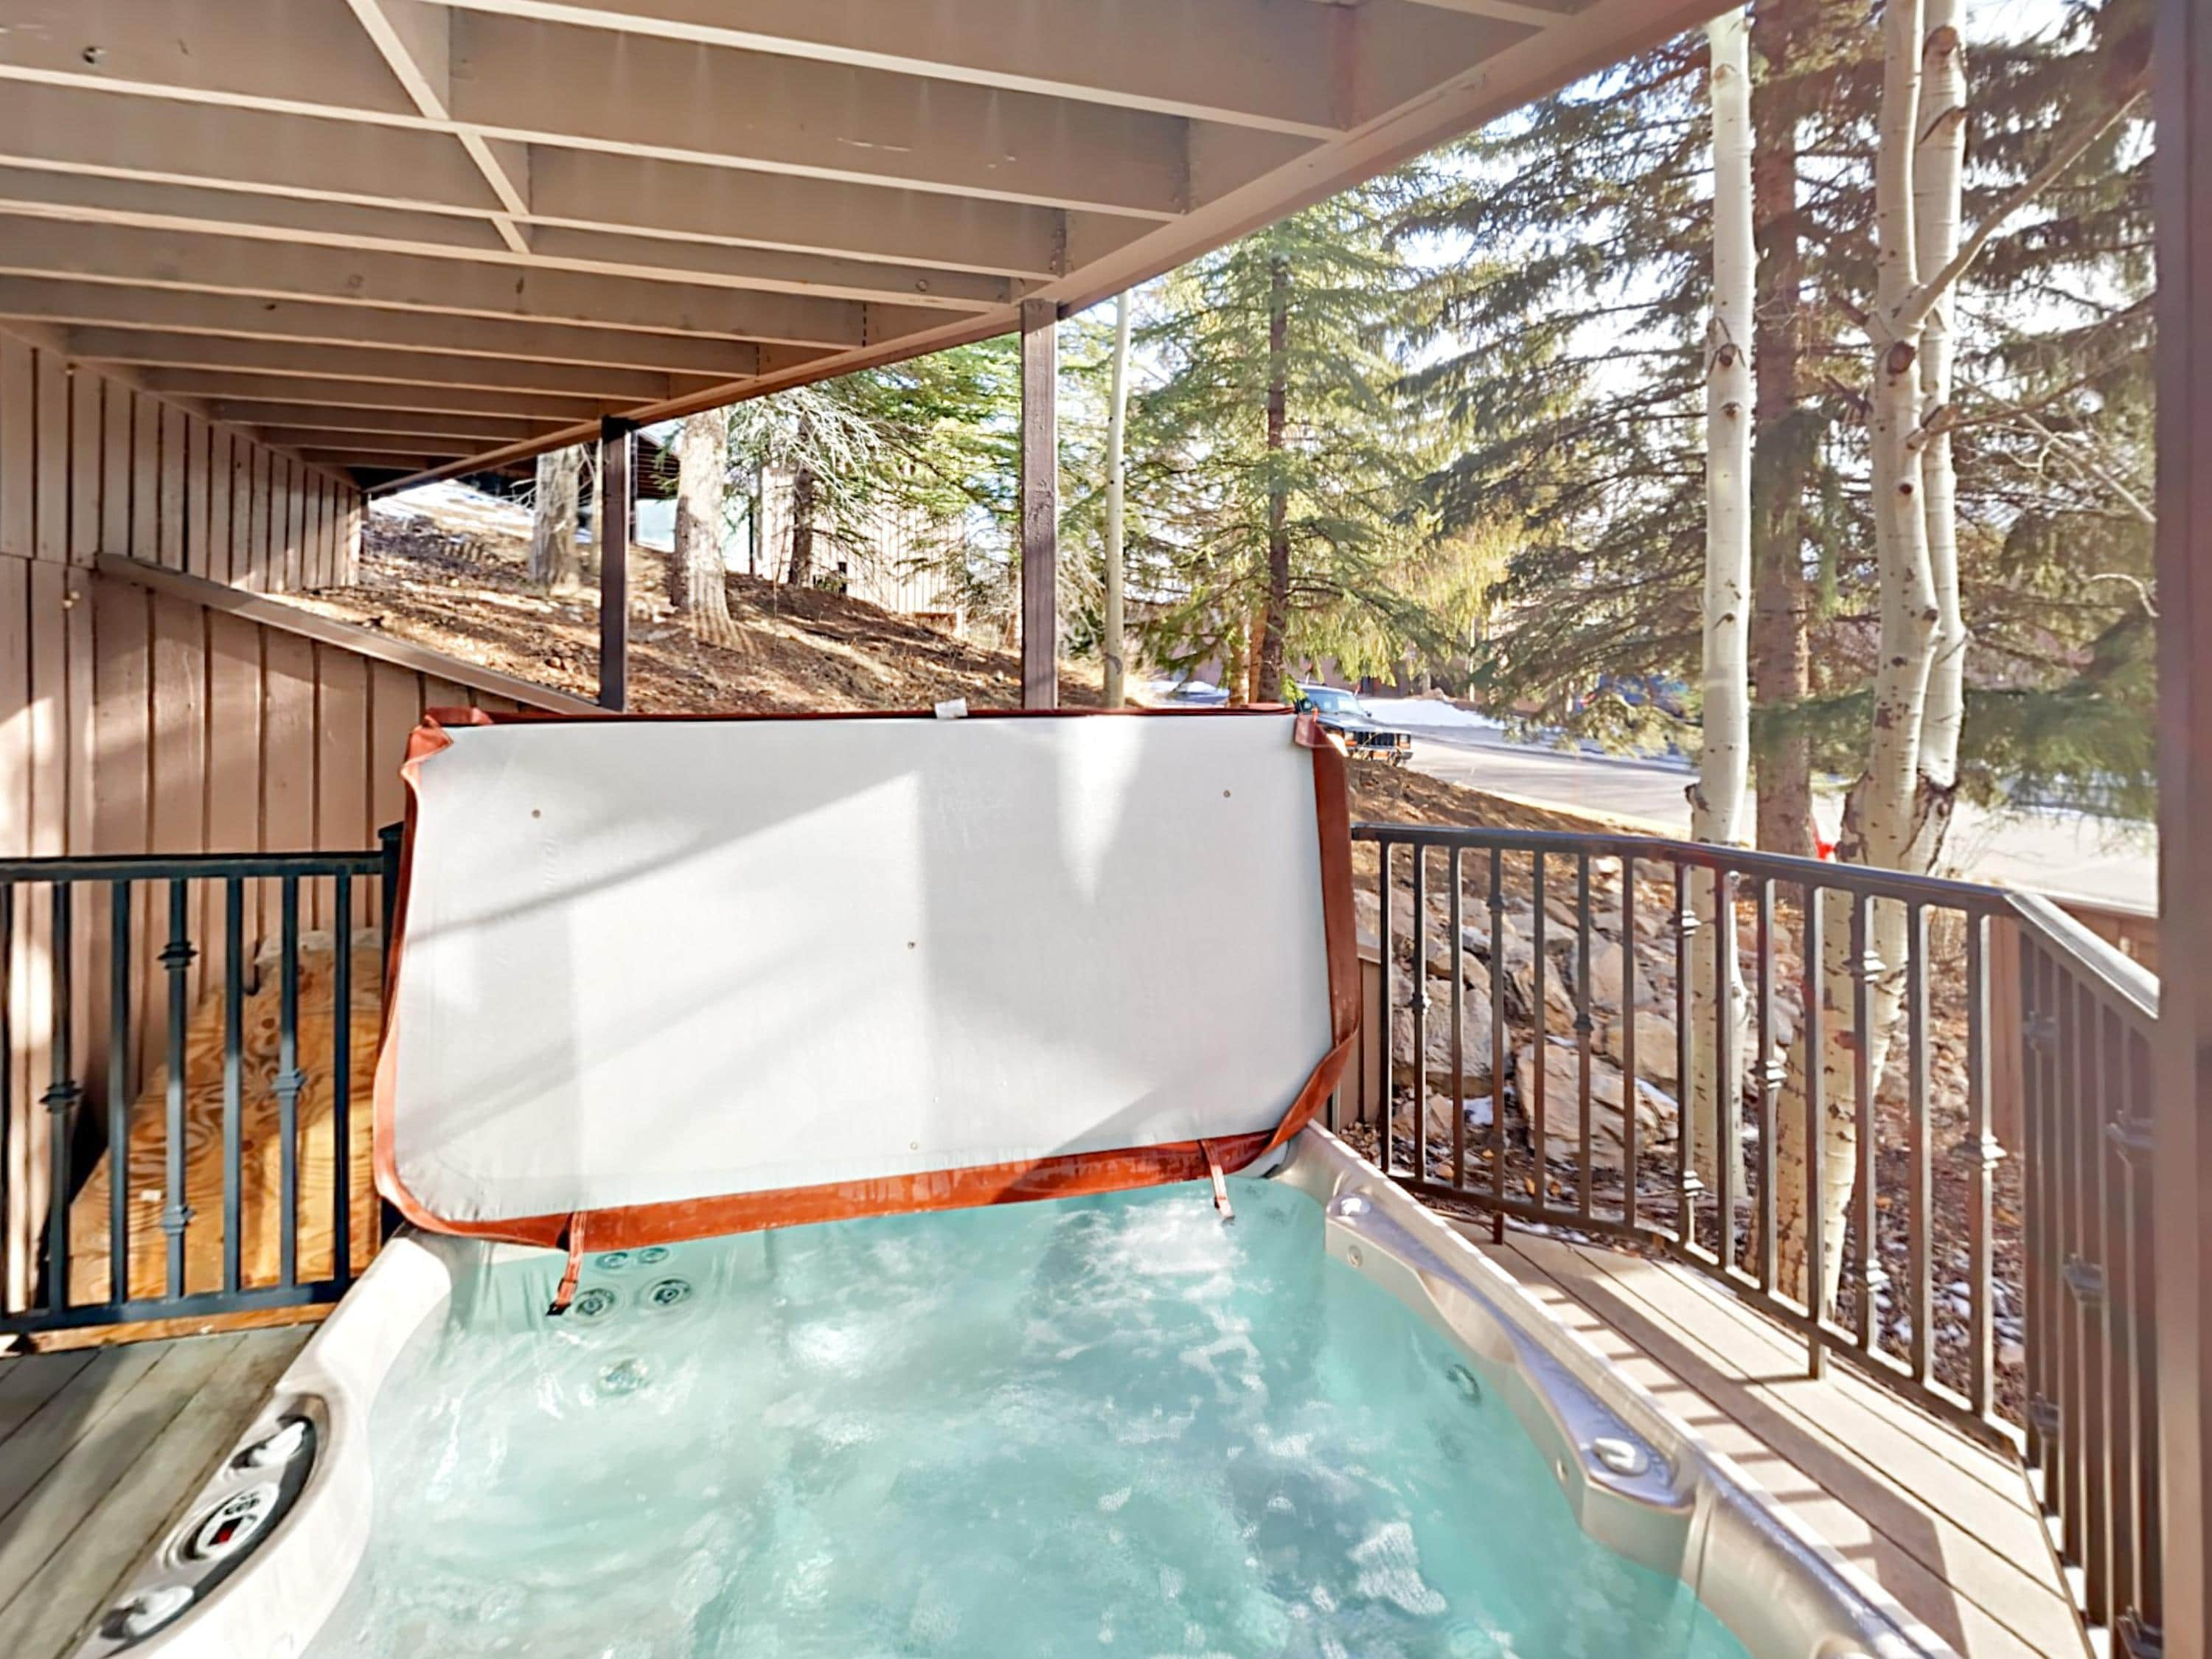 Soak in the private 7-person hot tub after a day exploring the mountain.